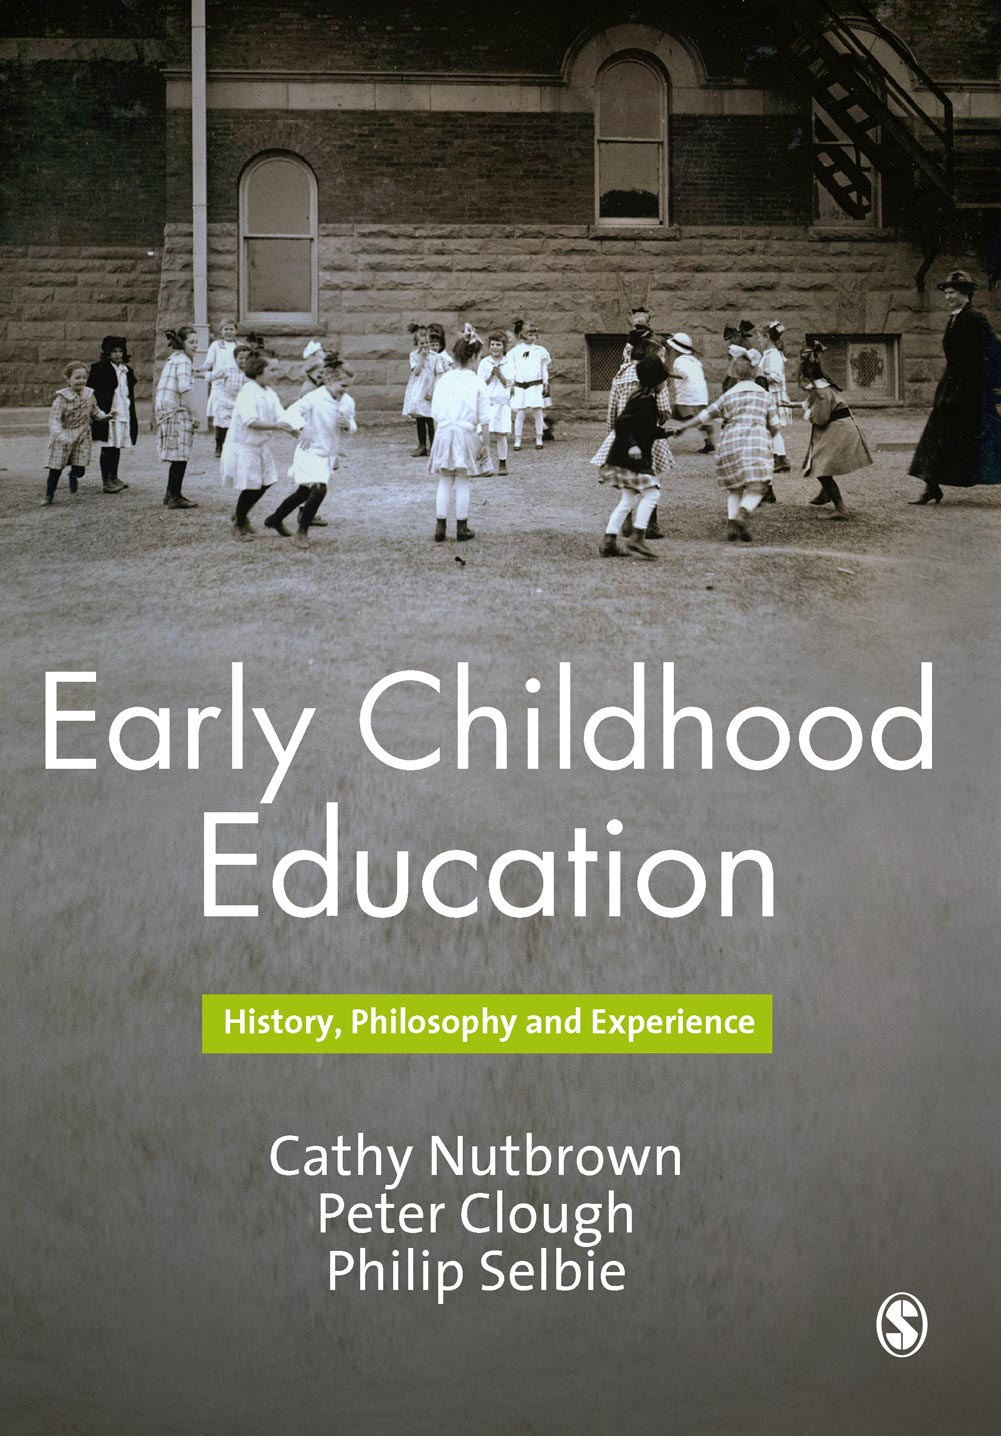 philosophy of education in early childhood